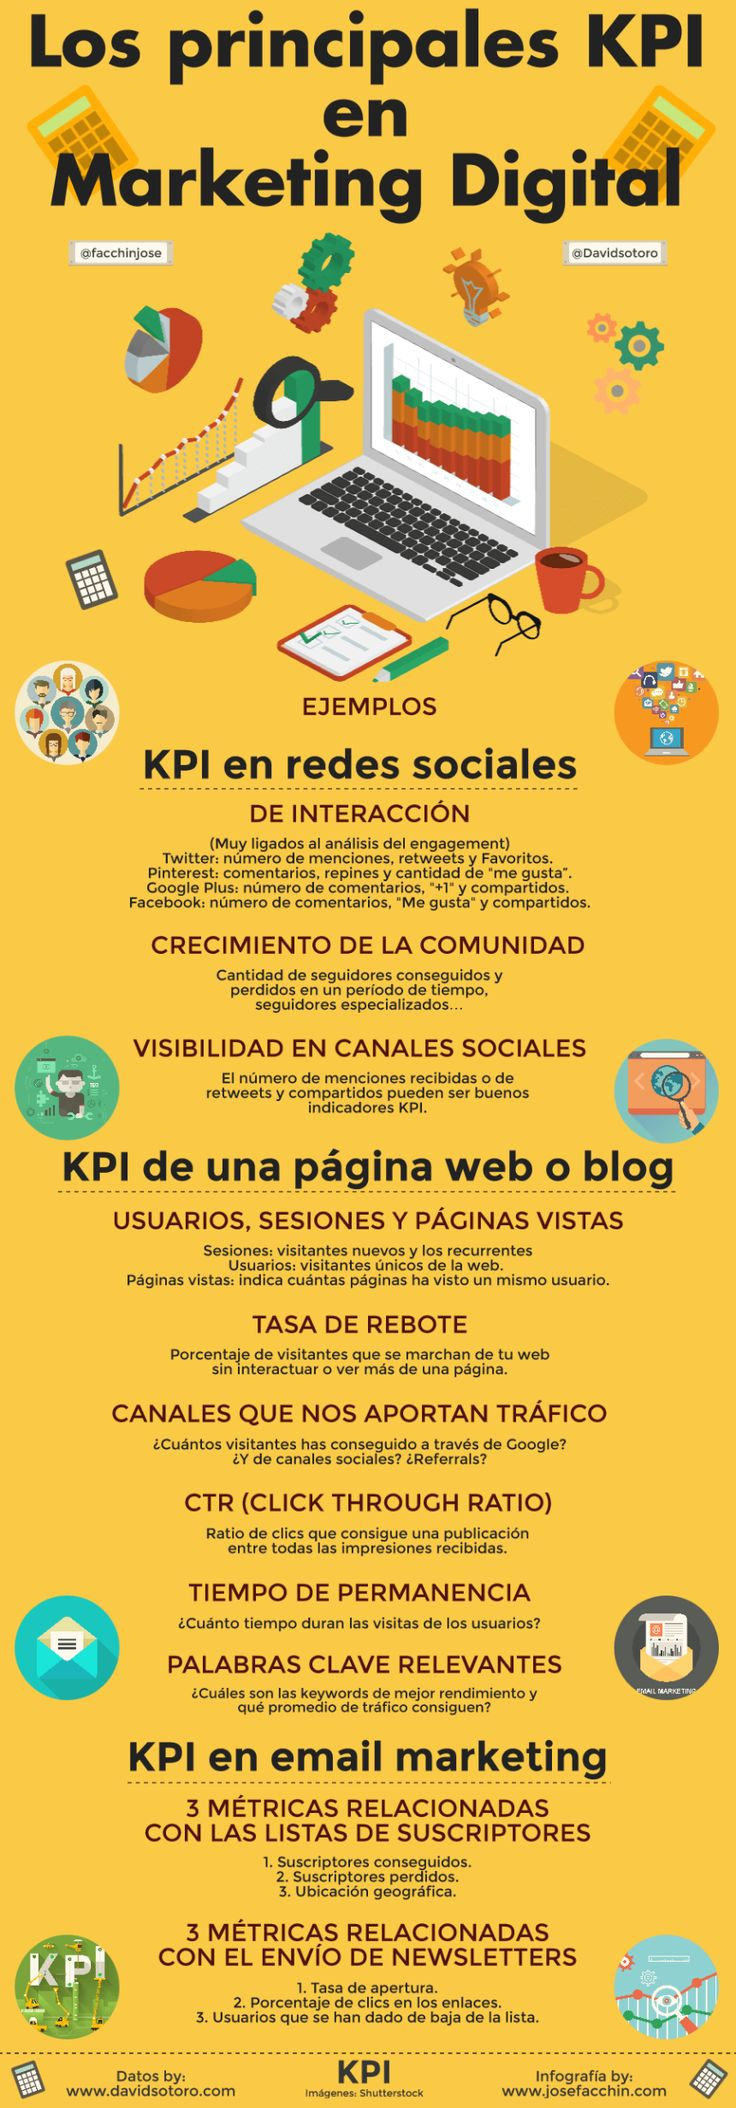 Los principales KPI del marketing digital #infografia #infographic #marketing Ideas Negocios Online para www.masymejor.com